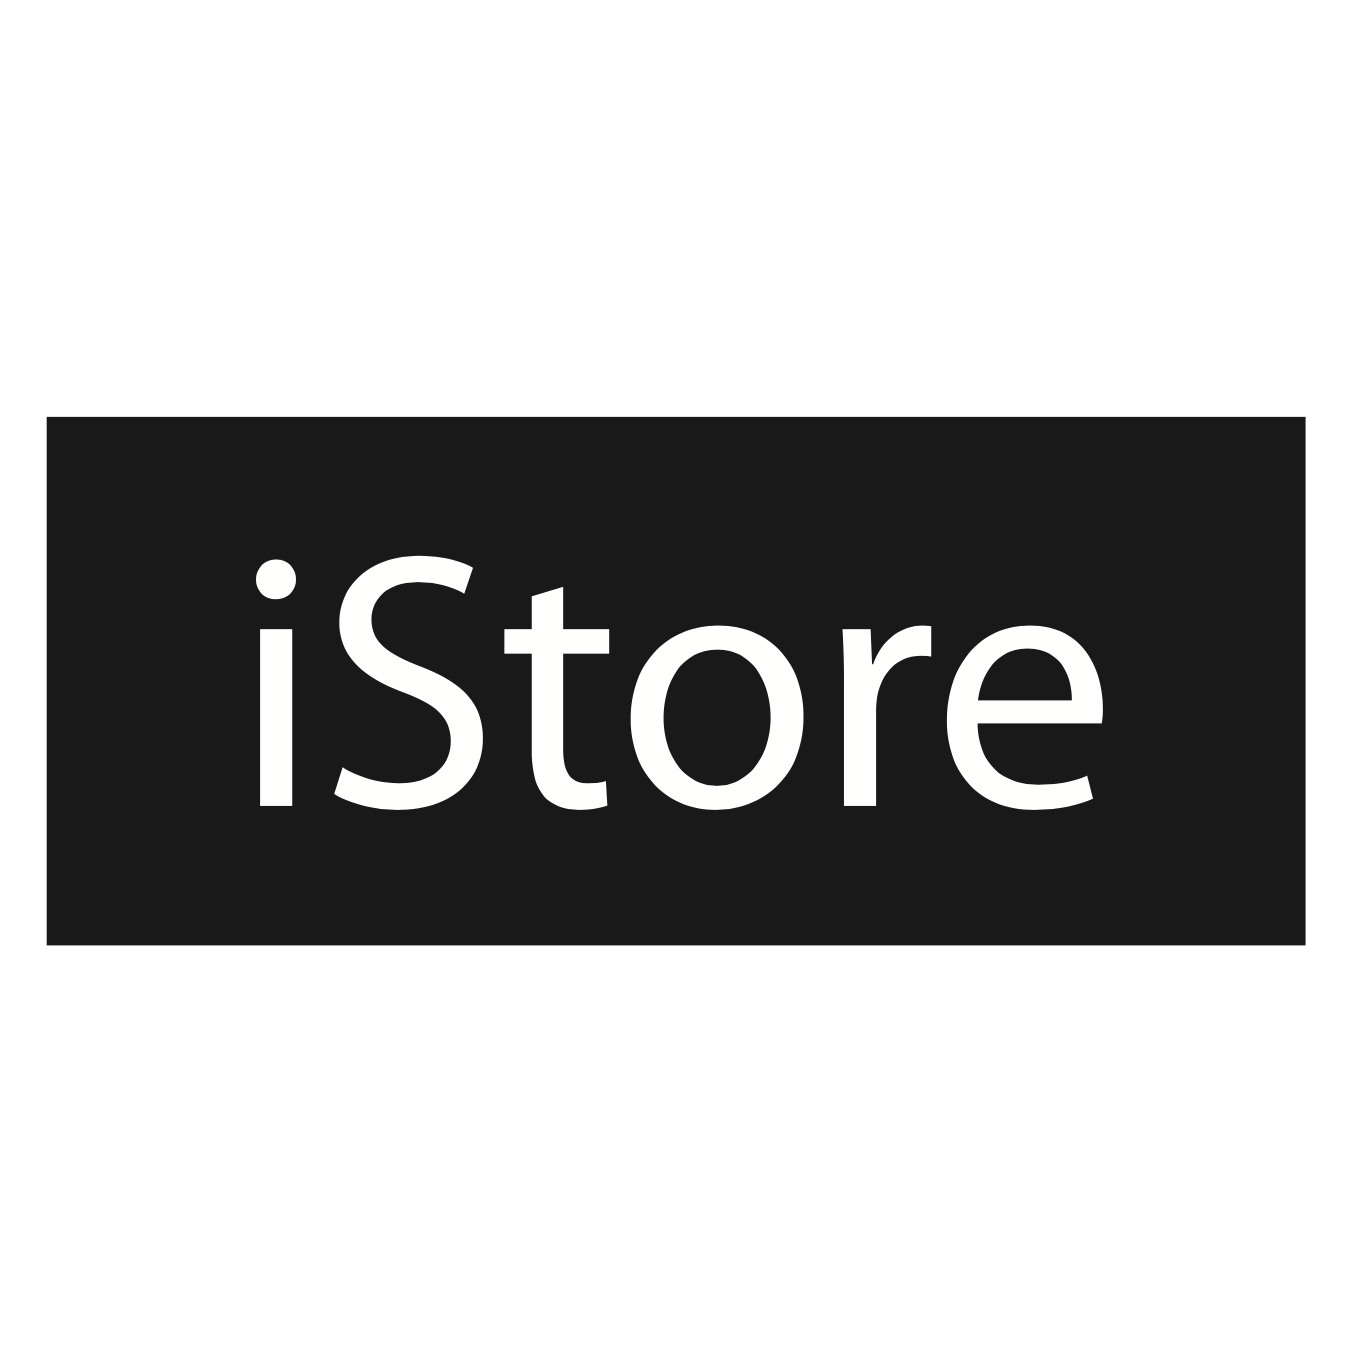 iStore has partnered with FASTA (Pty) Ltd